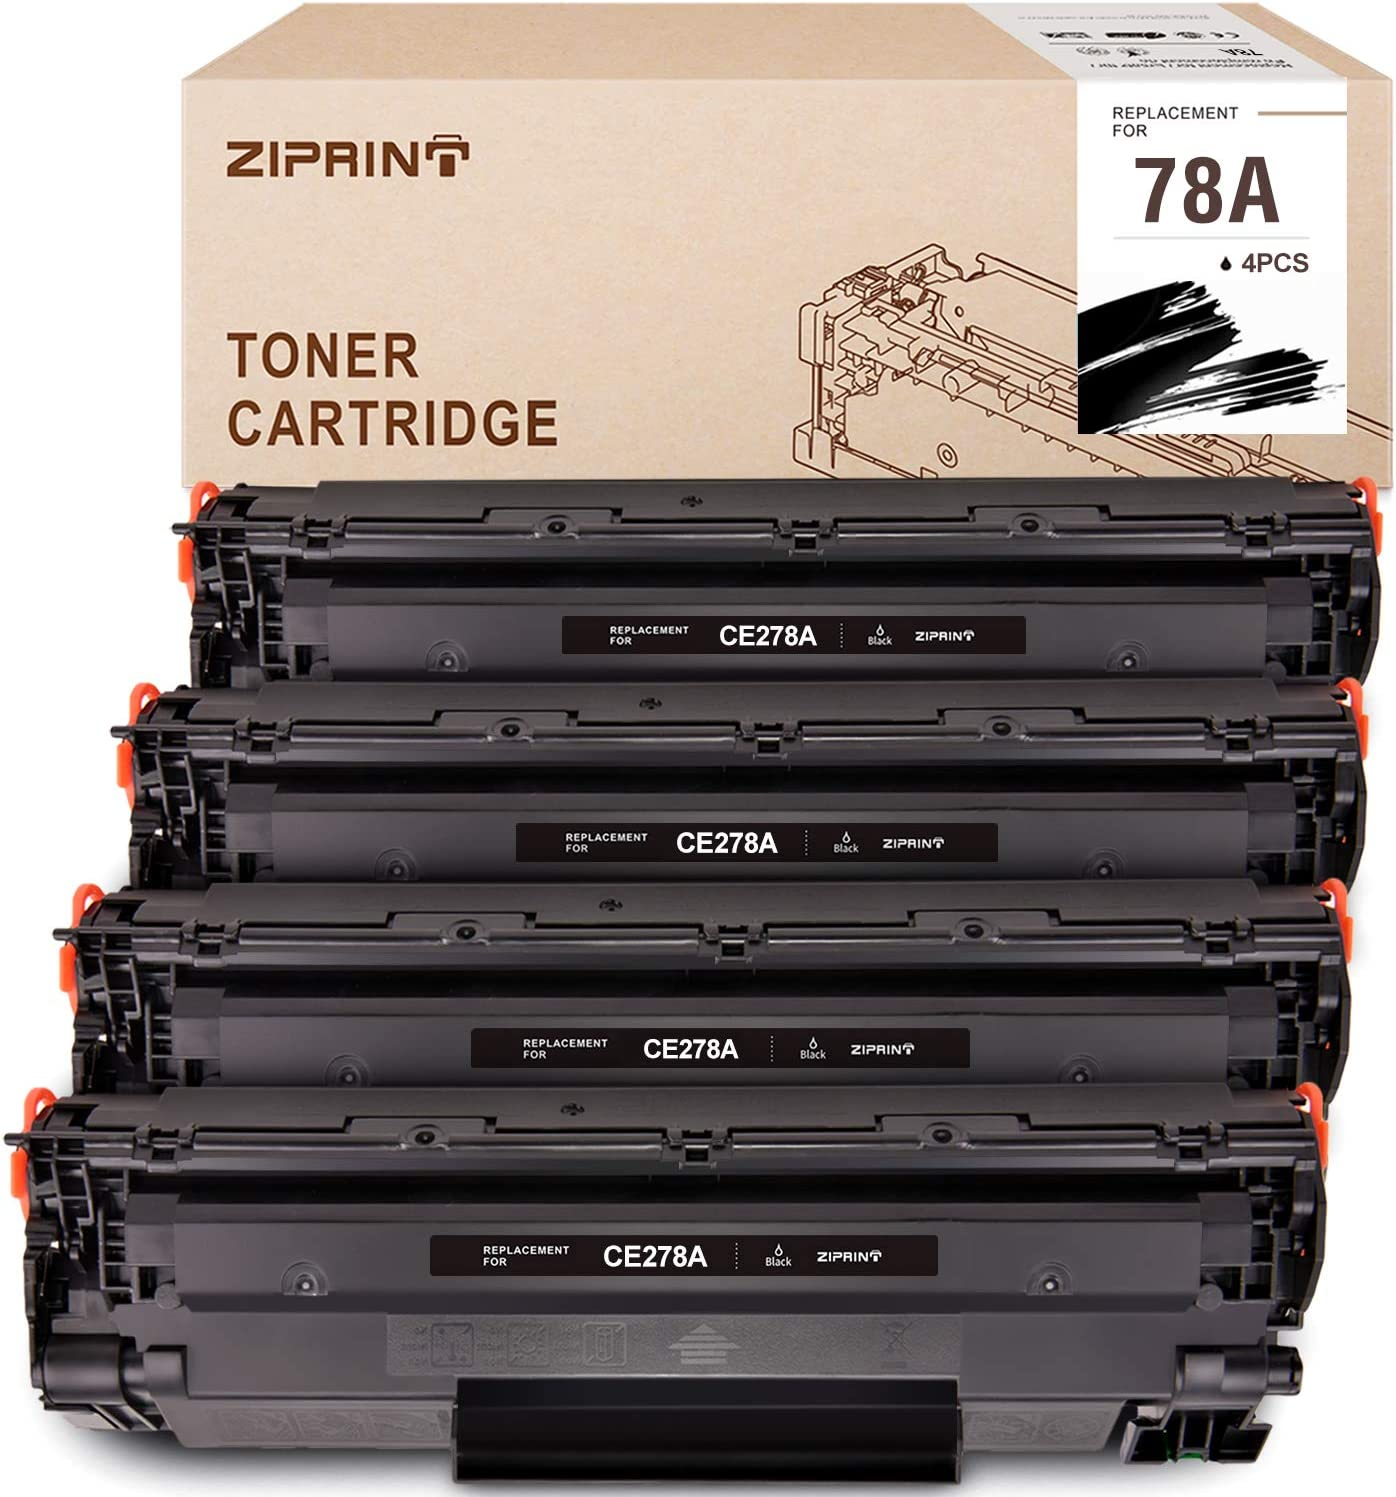 Ziprint Compatible Toner Cartridge Replacement for HP 78A CE278A Use with HP Laserjet P1606dn 1606dn M1536dnf 1536dnf MFP P1566 P1560 Toner Cartridge (Black,4-Pack)